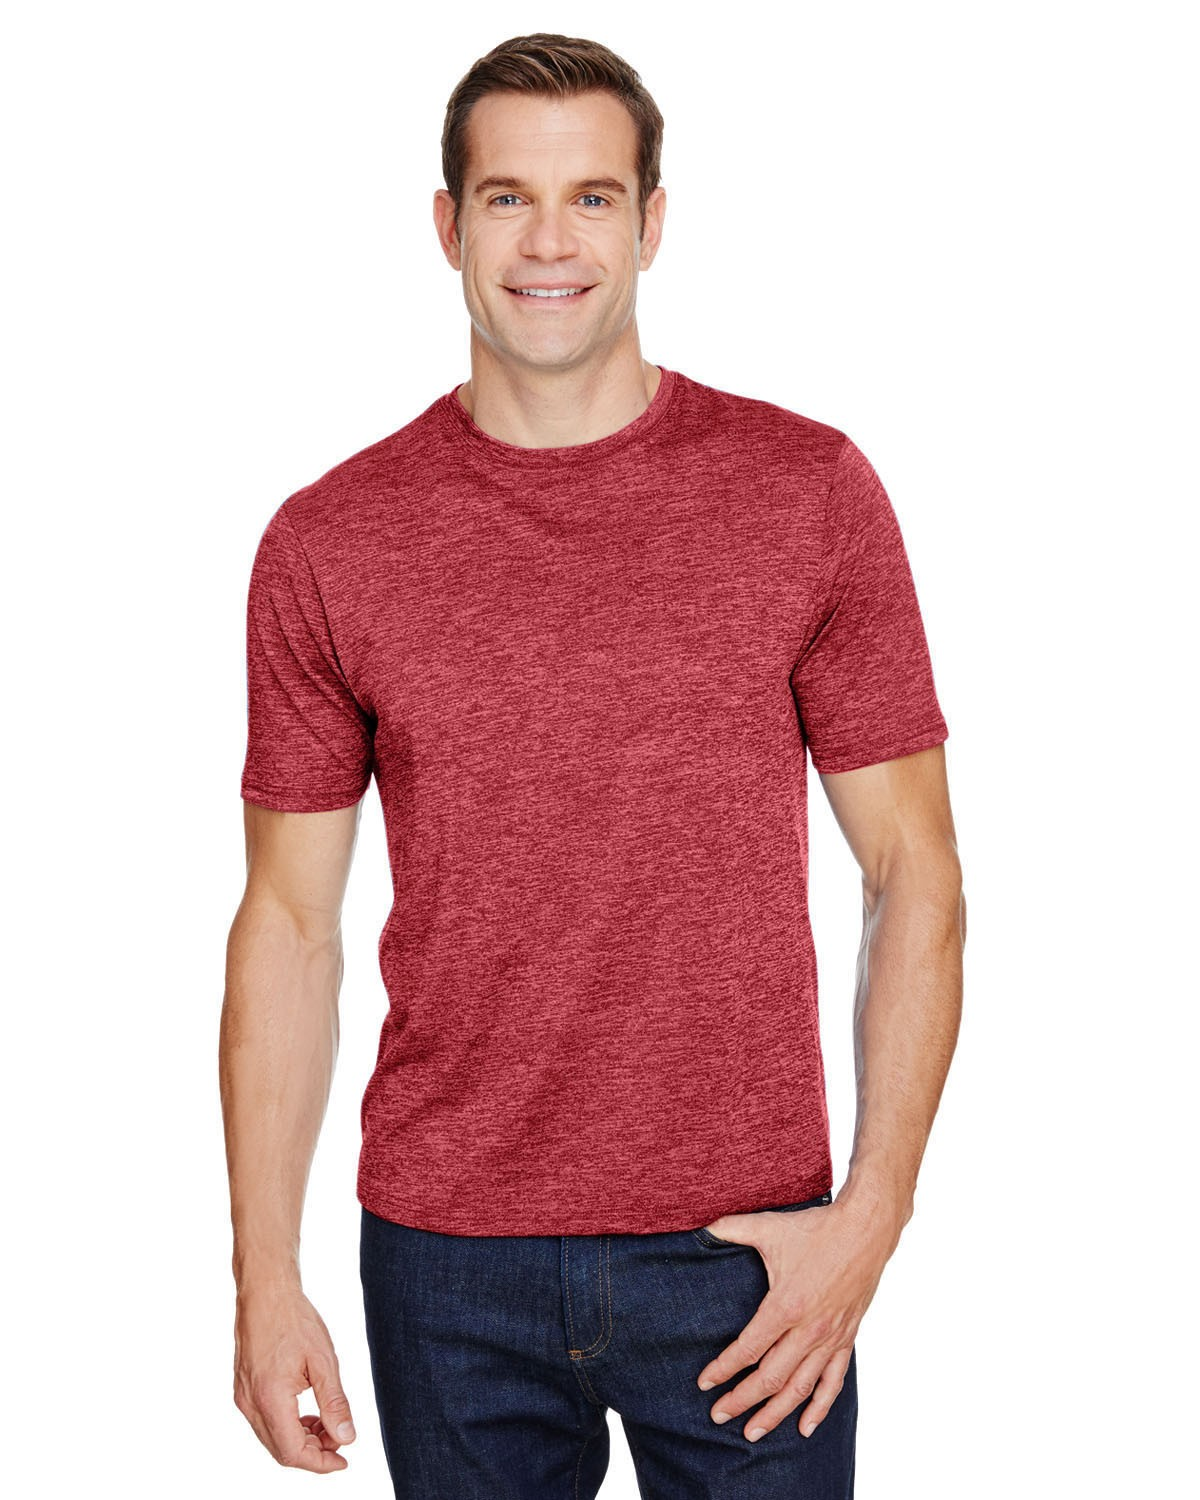 N3010 A4 Apparel RED